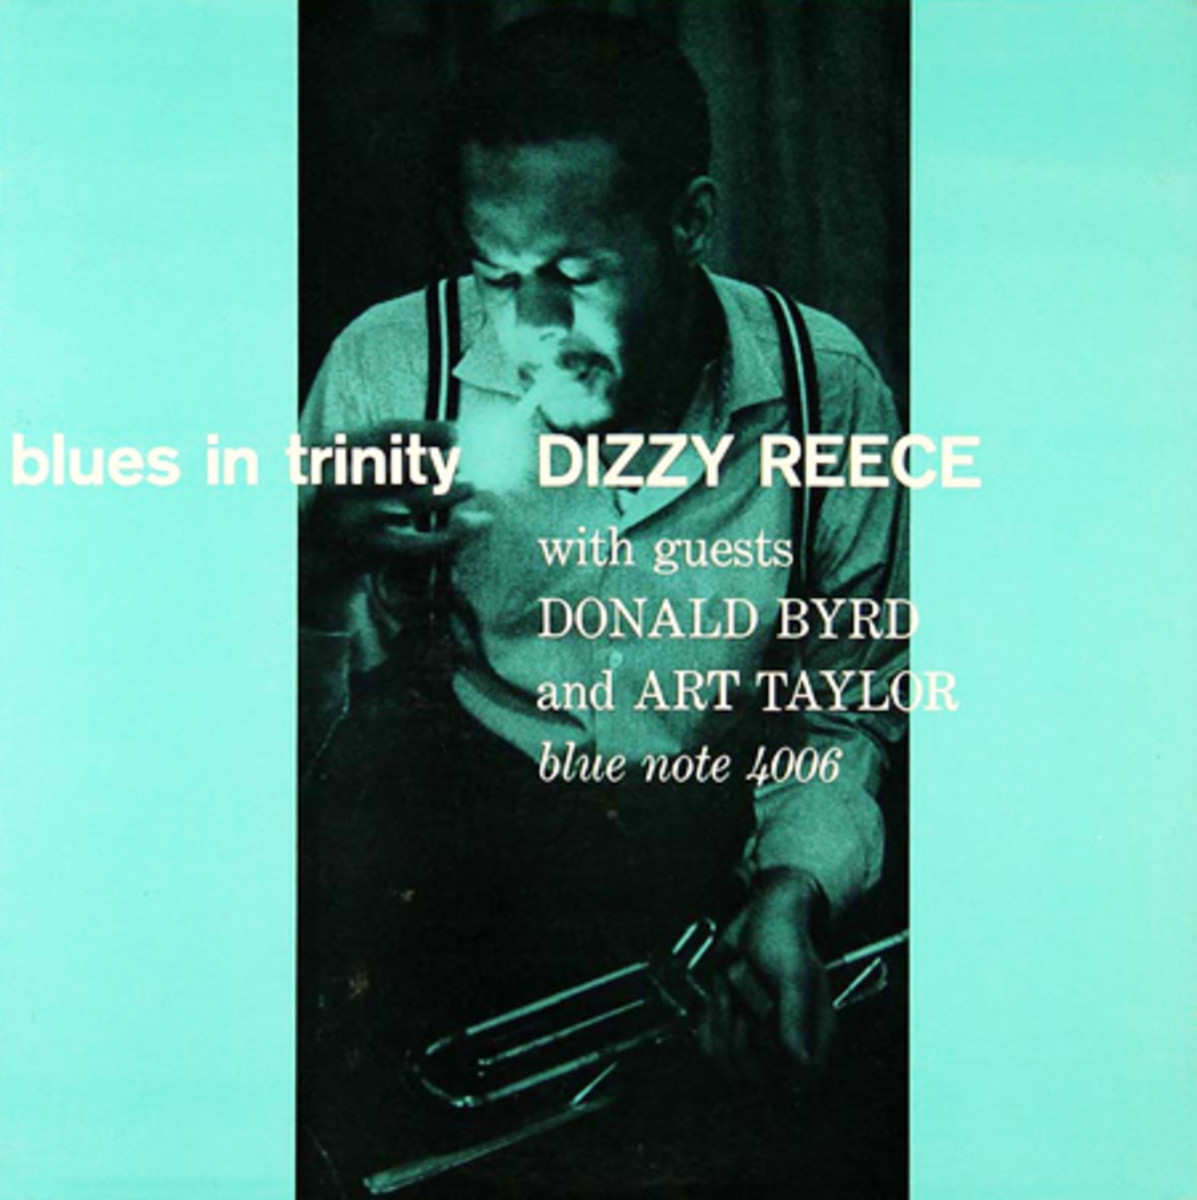 """Dizzy Reece """"Blues In Trinity"""" Blue Note Records 4006 12"""" LP Vinyl Record (1958) Album Cover Design by Reid Miles, Photo by Francis Wolff"""